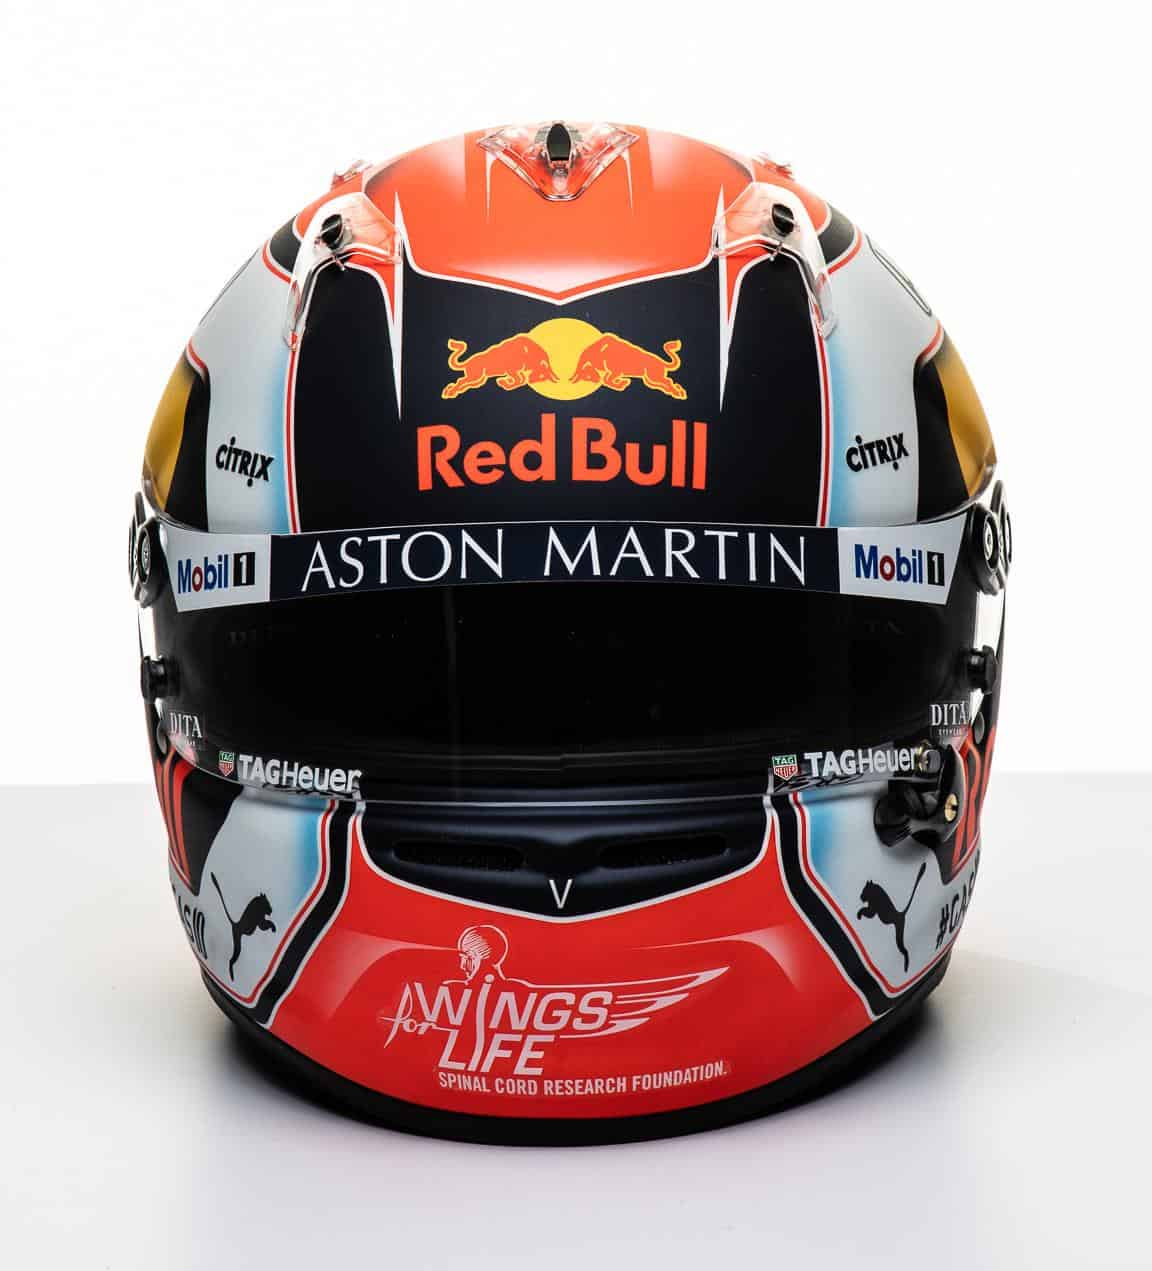 2019 F1 Pierre Gasly Red Bull Honda helmet front Photo Red Bull Edited by MAXF1net